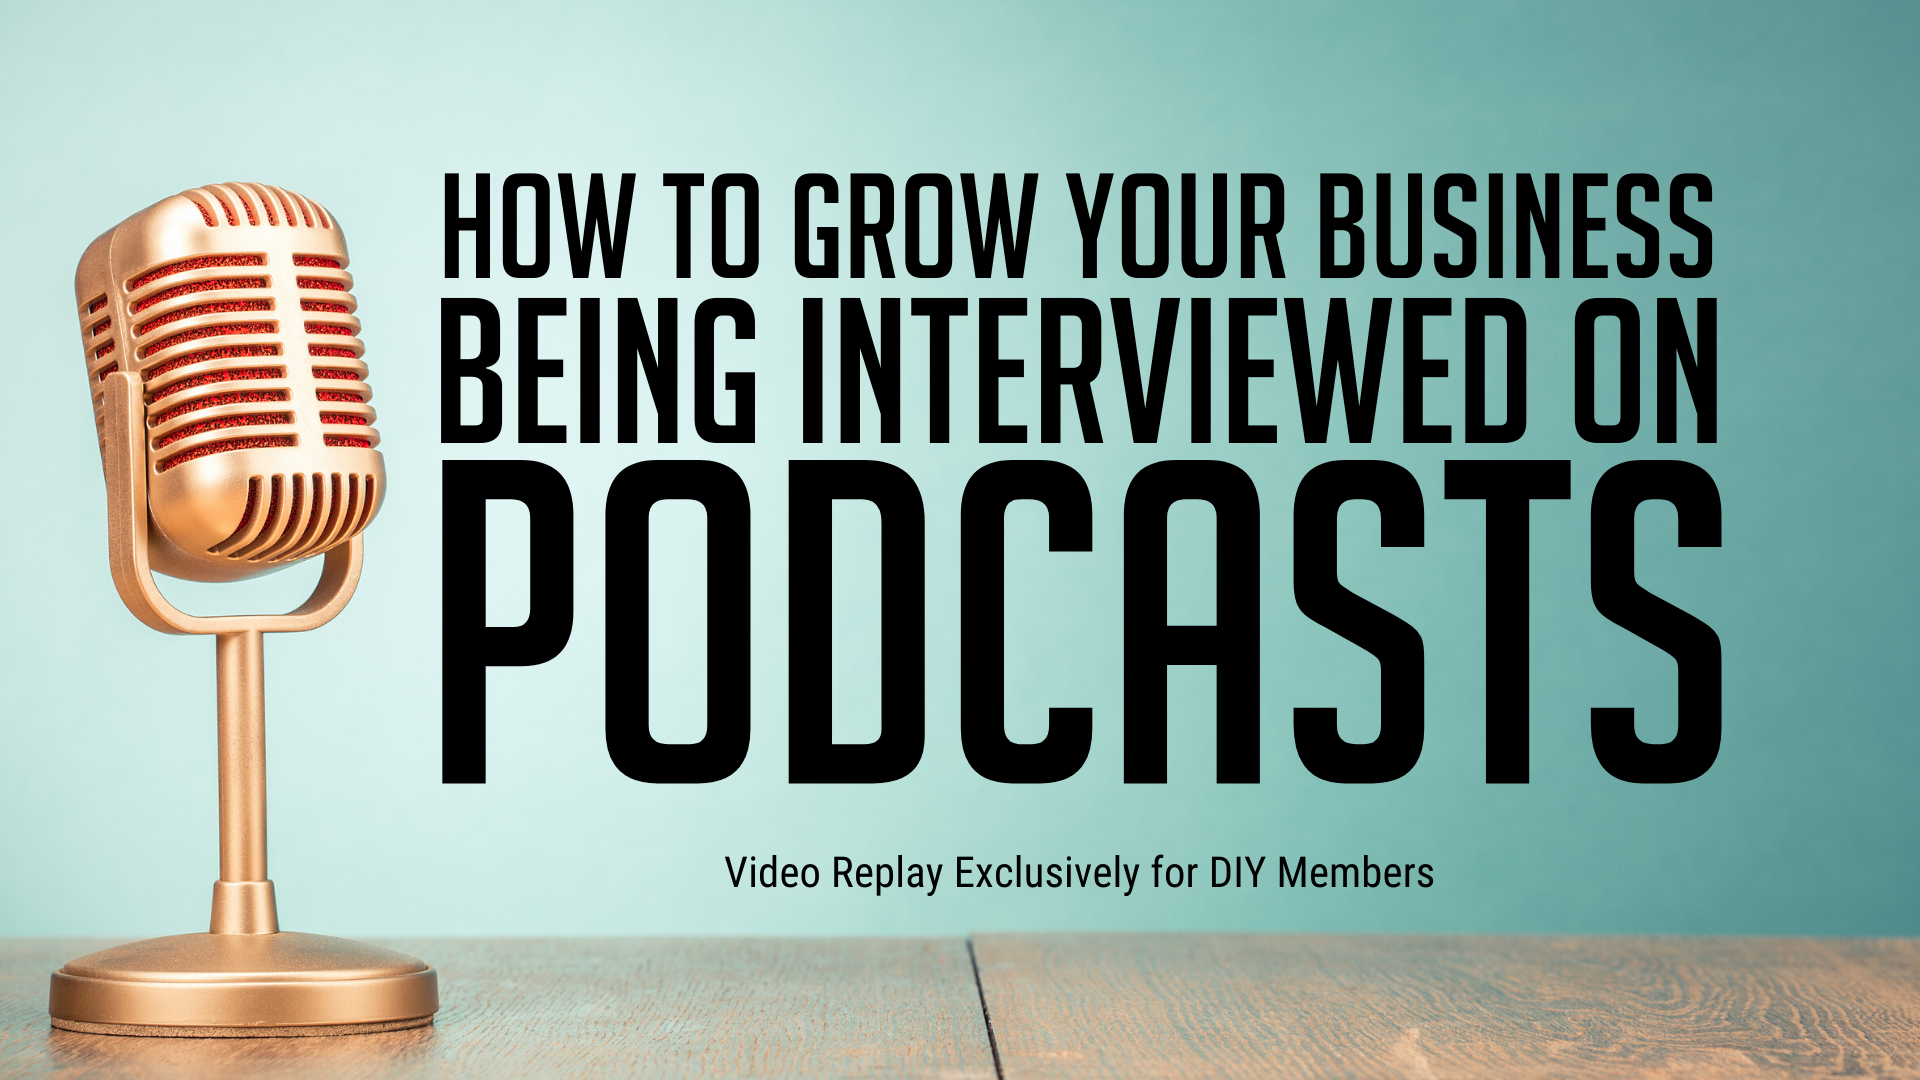 Thursday's How to Grow Your Business Being Interviewed on Podcasts video replay